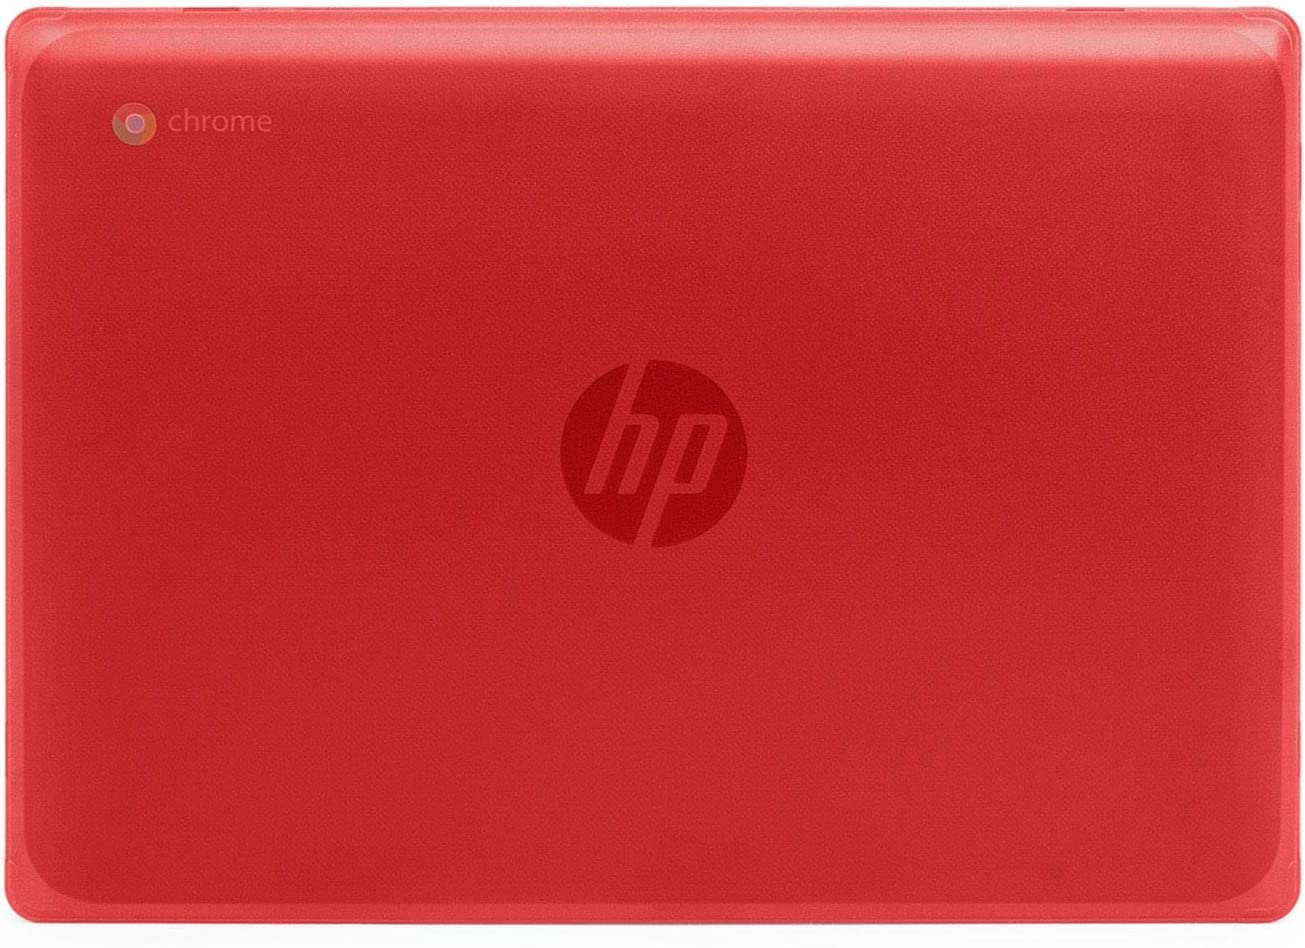 "mCover Hard Shell Case for New 2020 11.6"" HP Chromebook 11 G8 EE laptops (Red)"